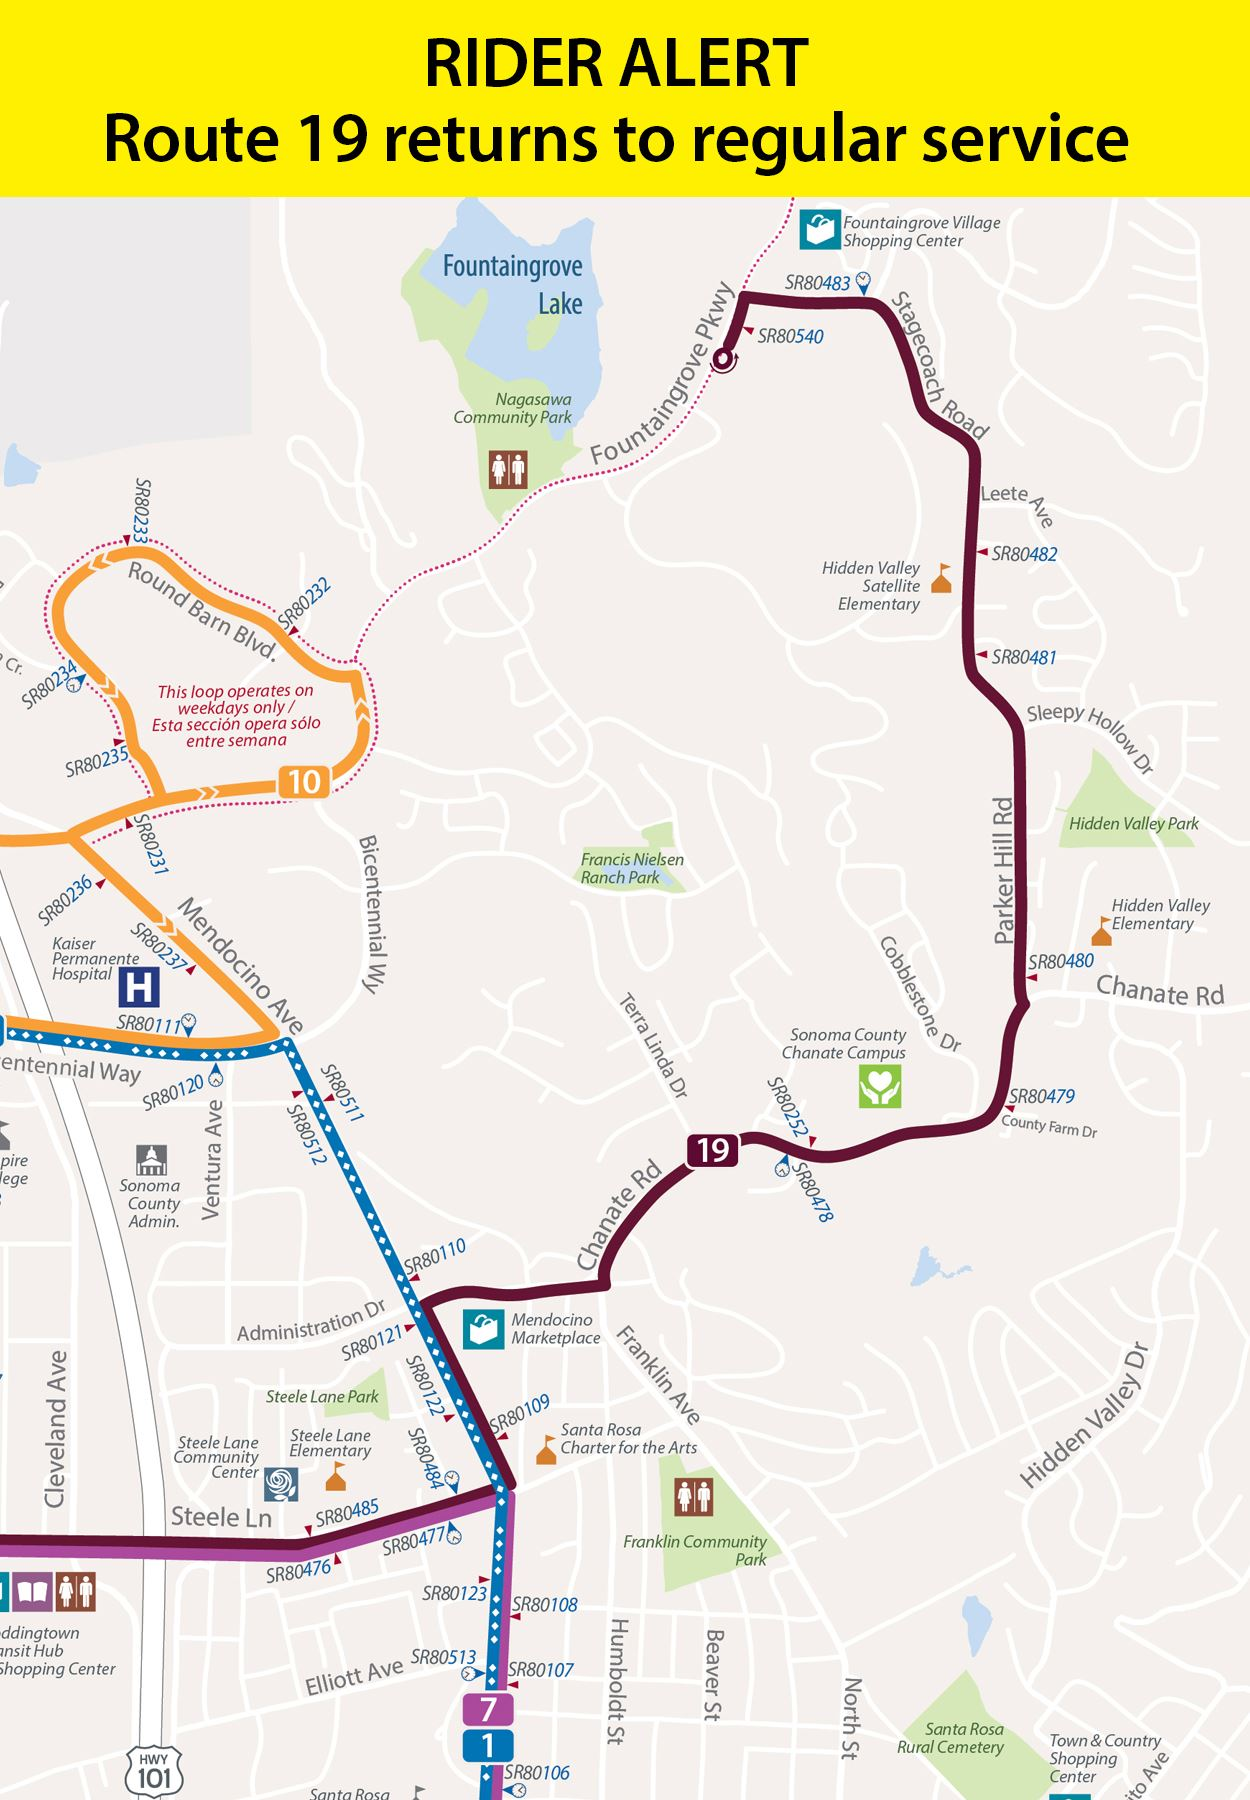 Map showing temporary detours for route 19